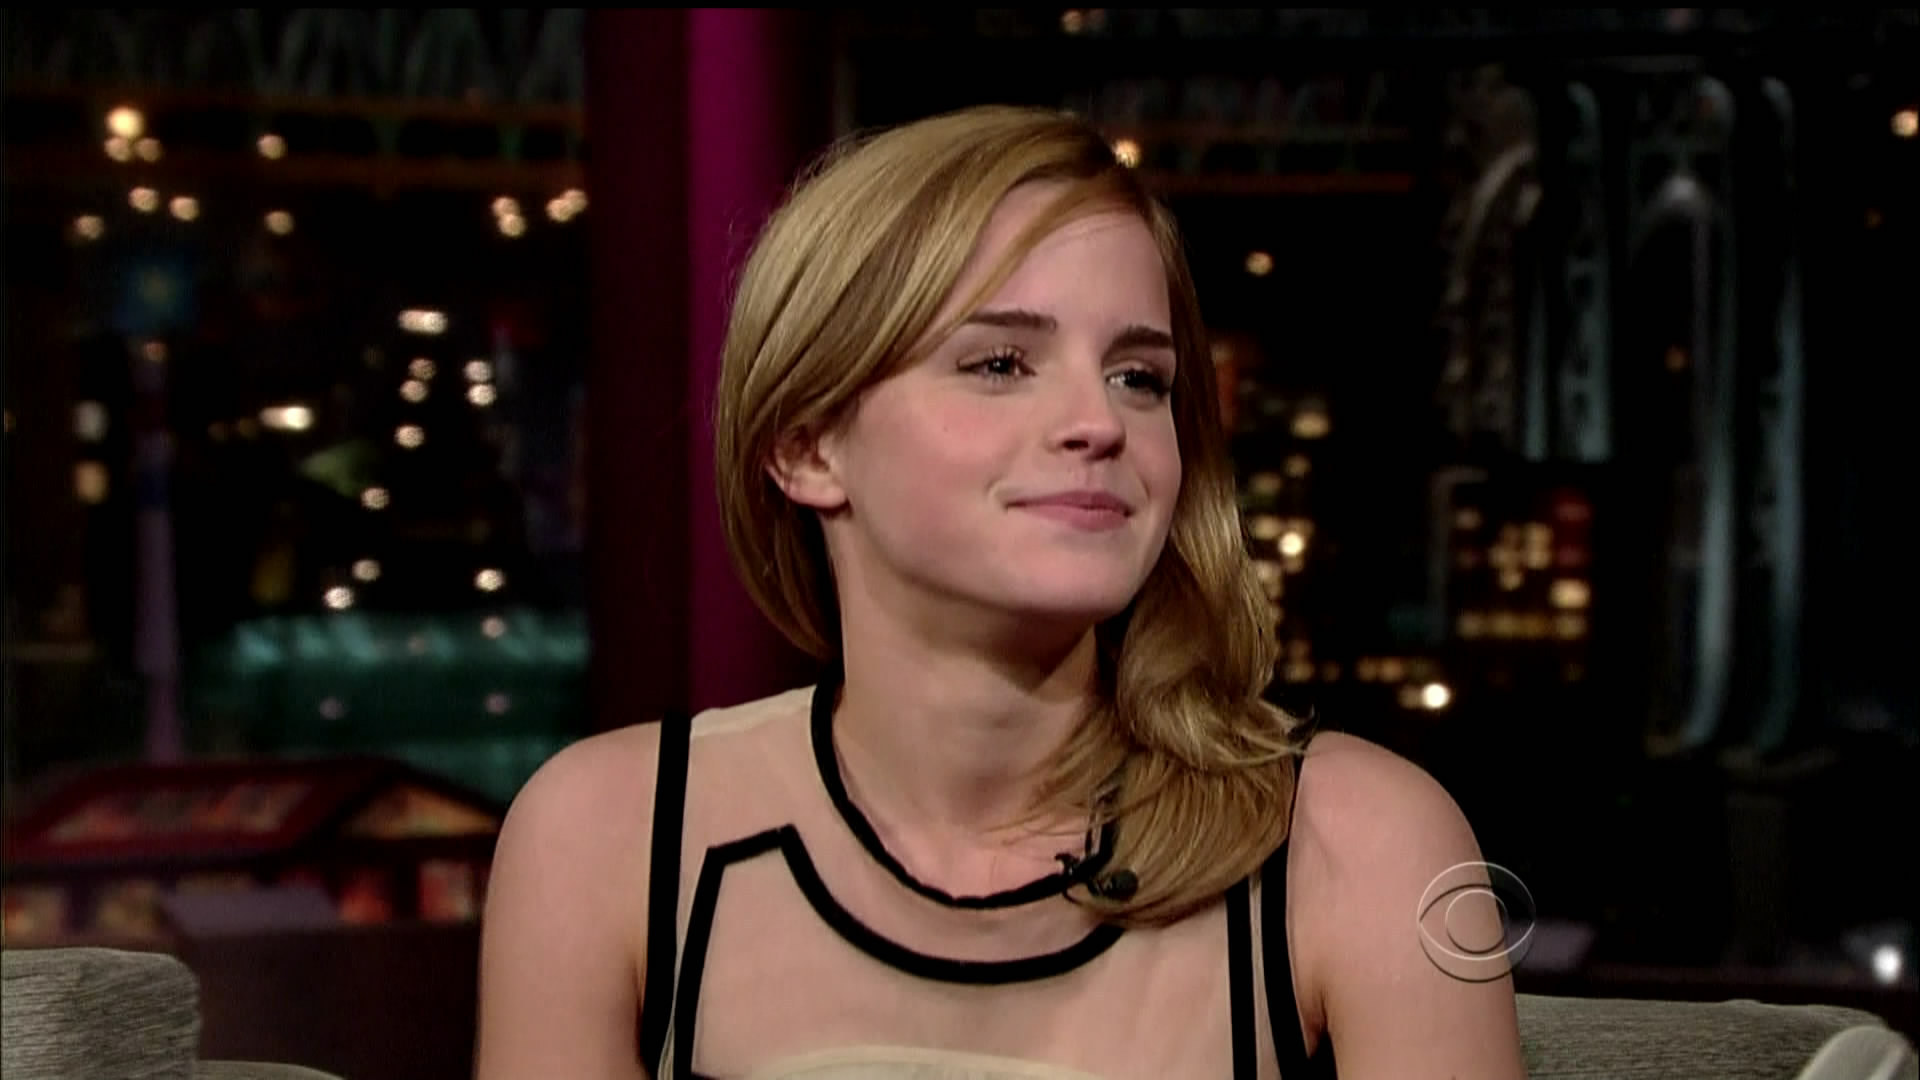 You doctor Emma watson upskirt david letterman love